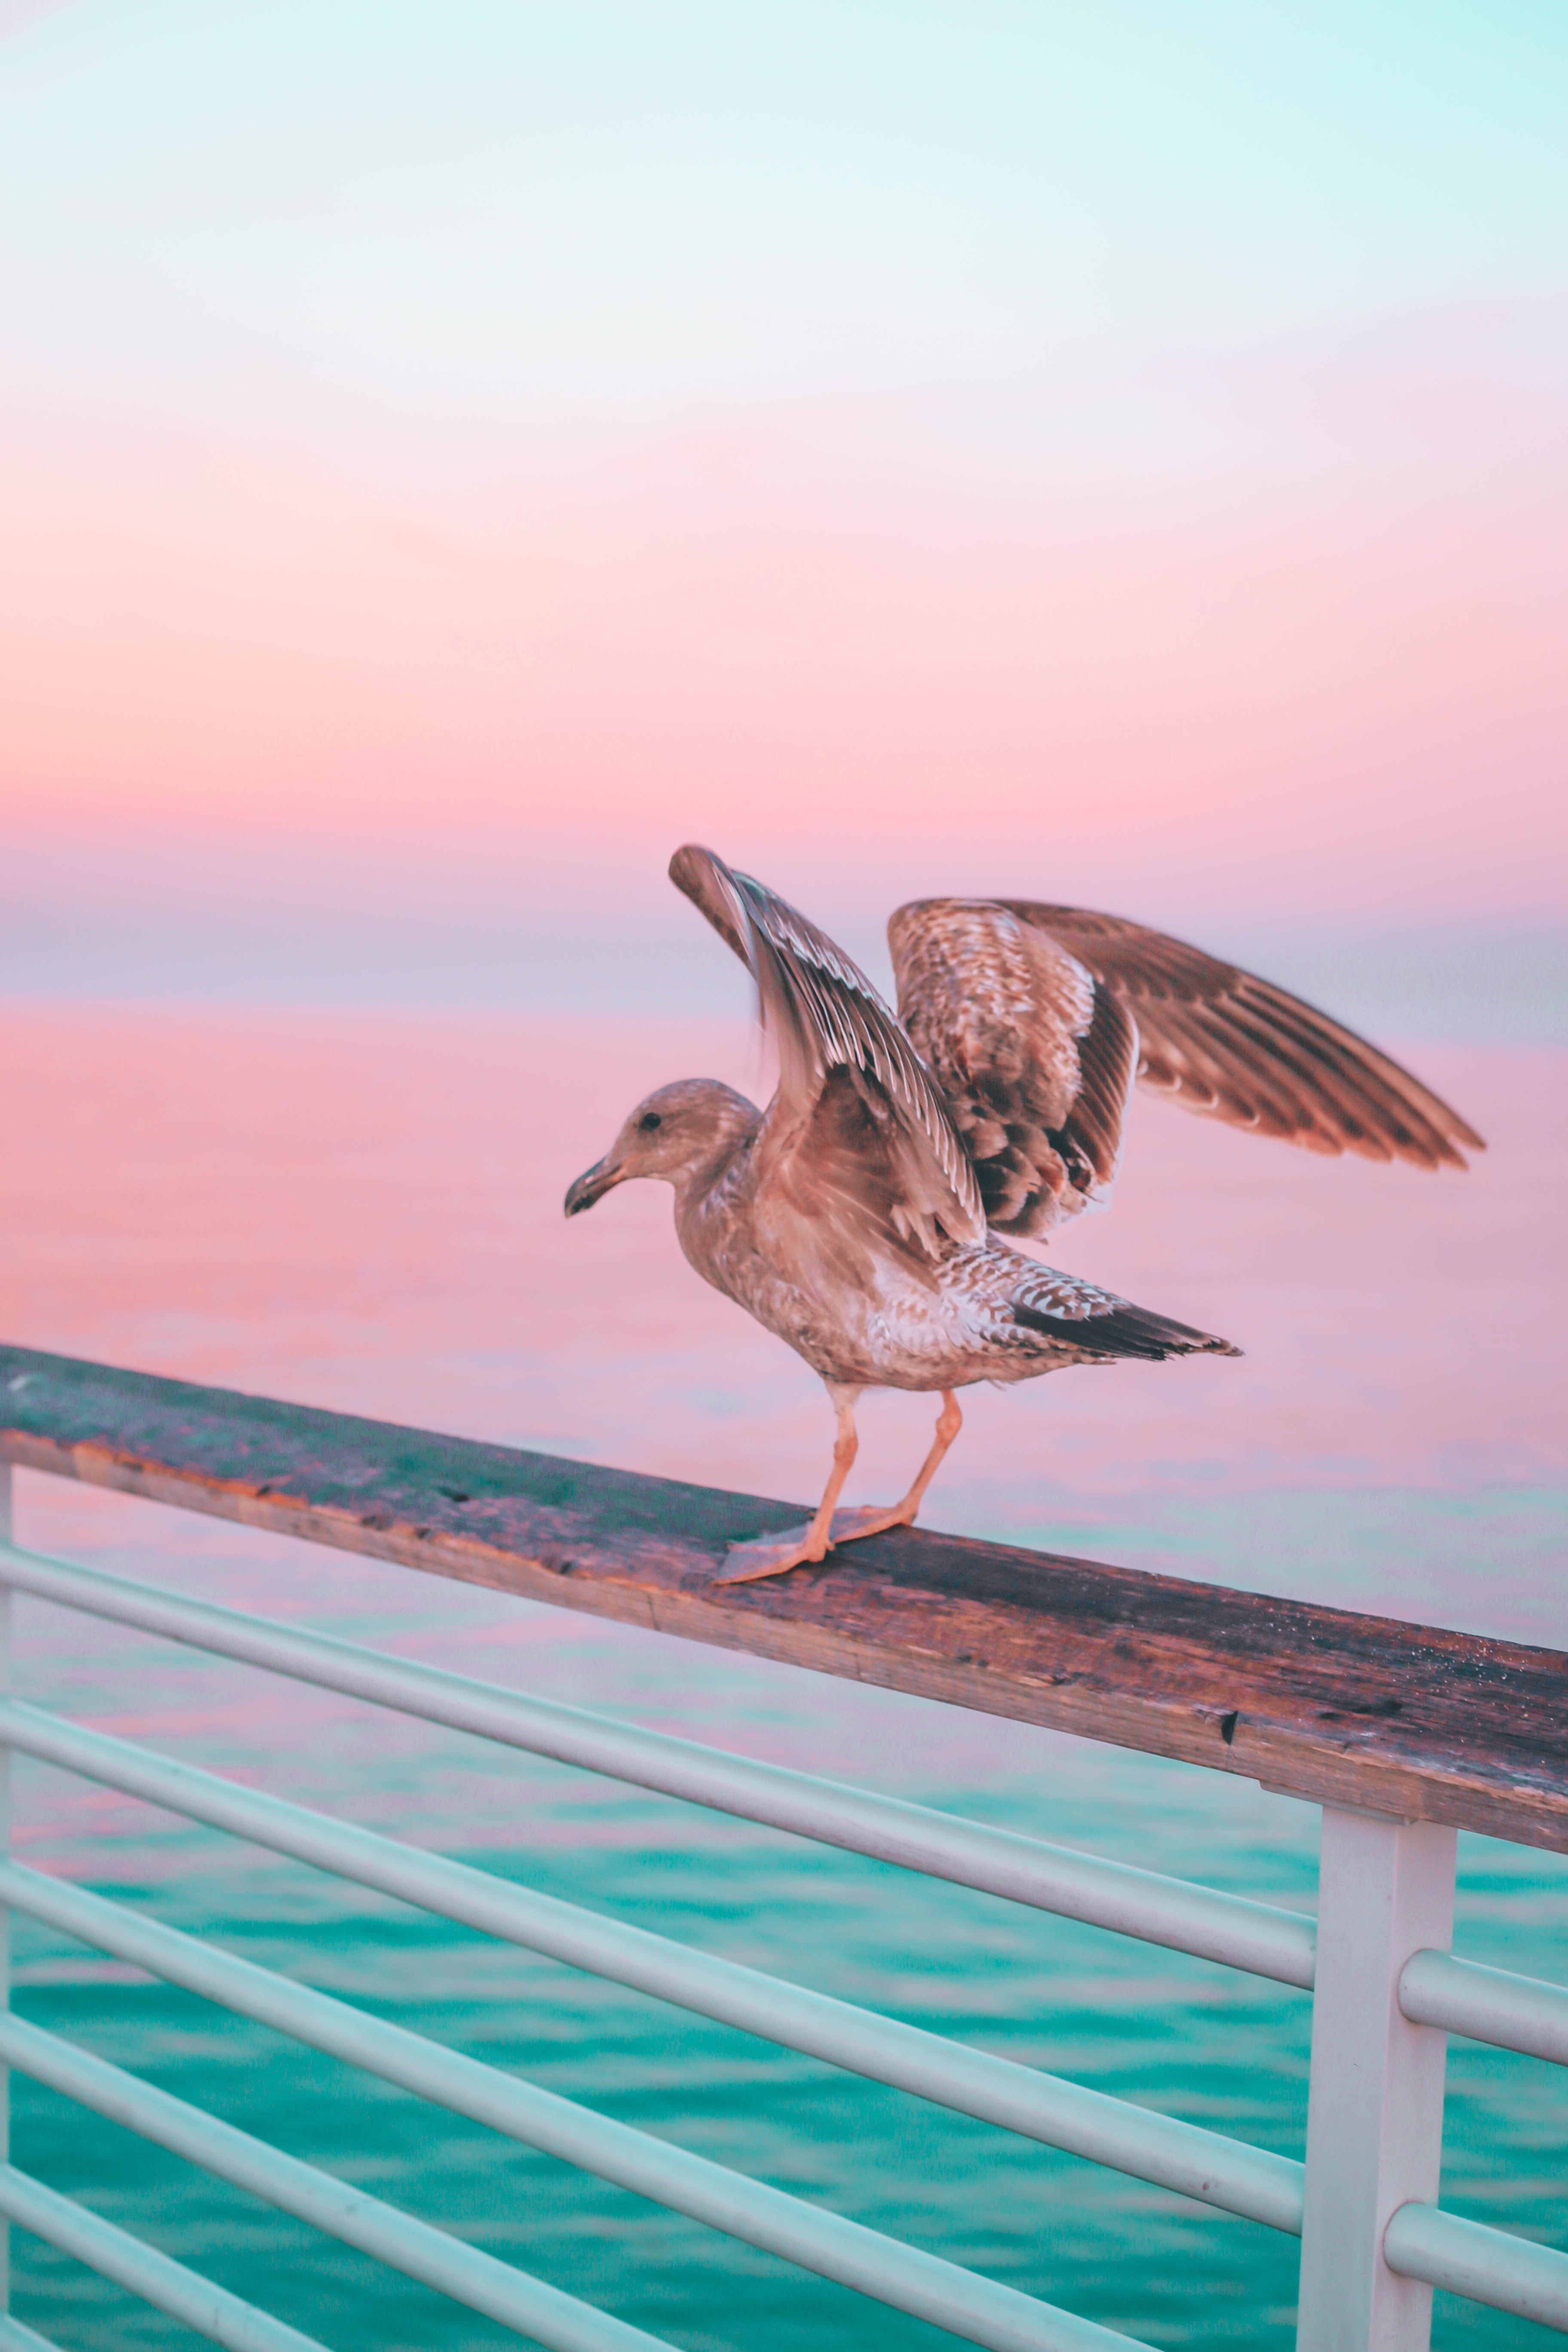 99513 download wallpaper Animals, Gull, Seagull, Bird, Sea, Pink, Pastel, Handrails, Pier screensavers and pictures for free